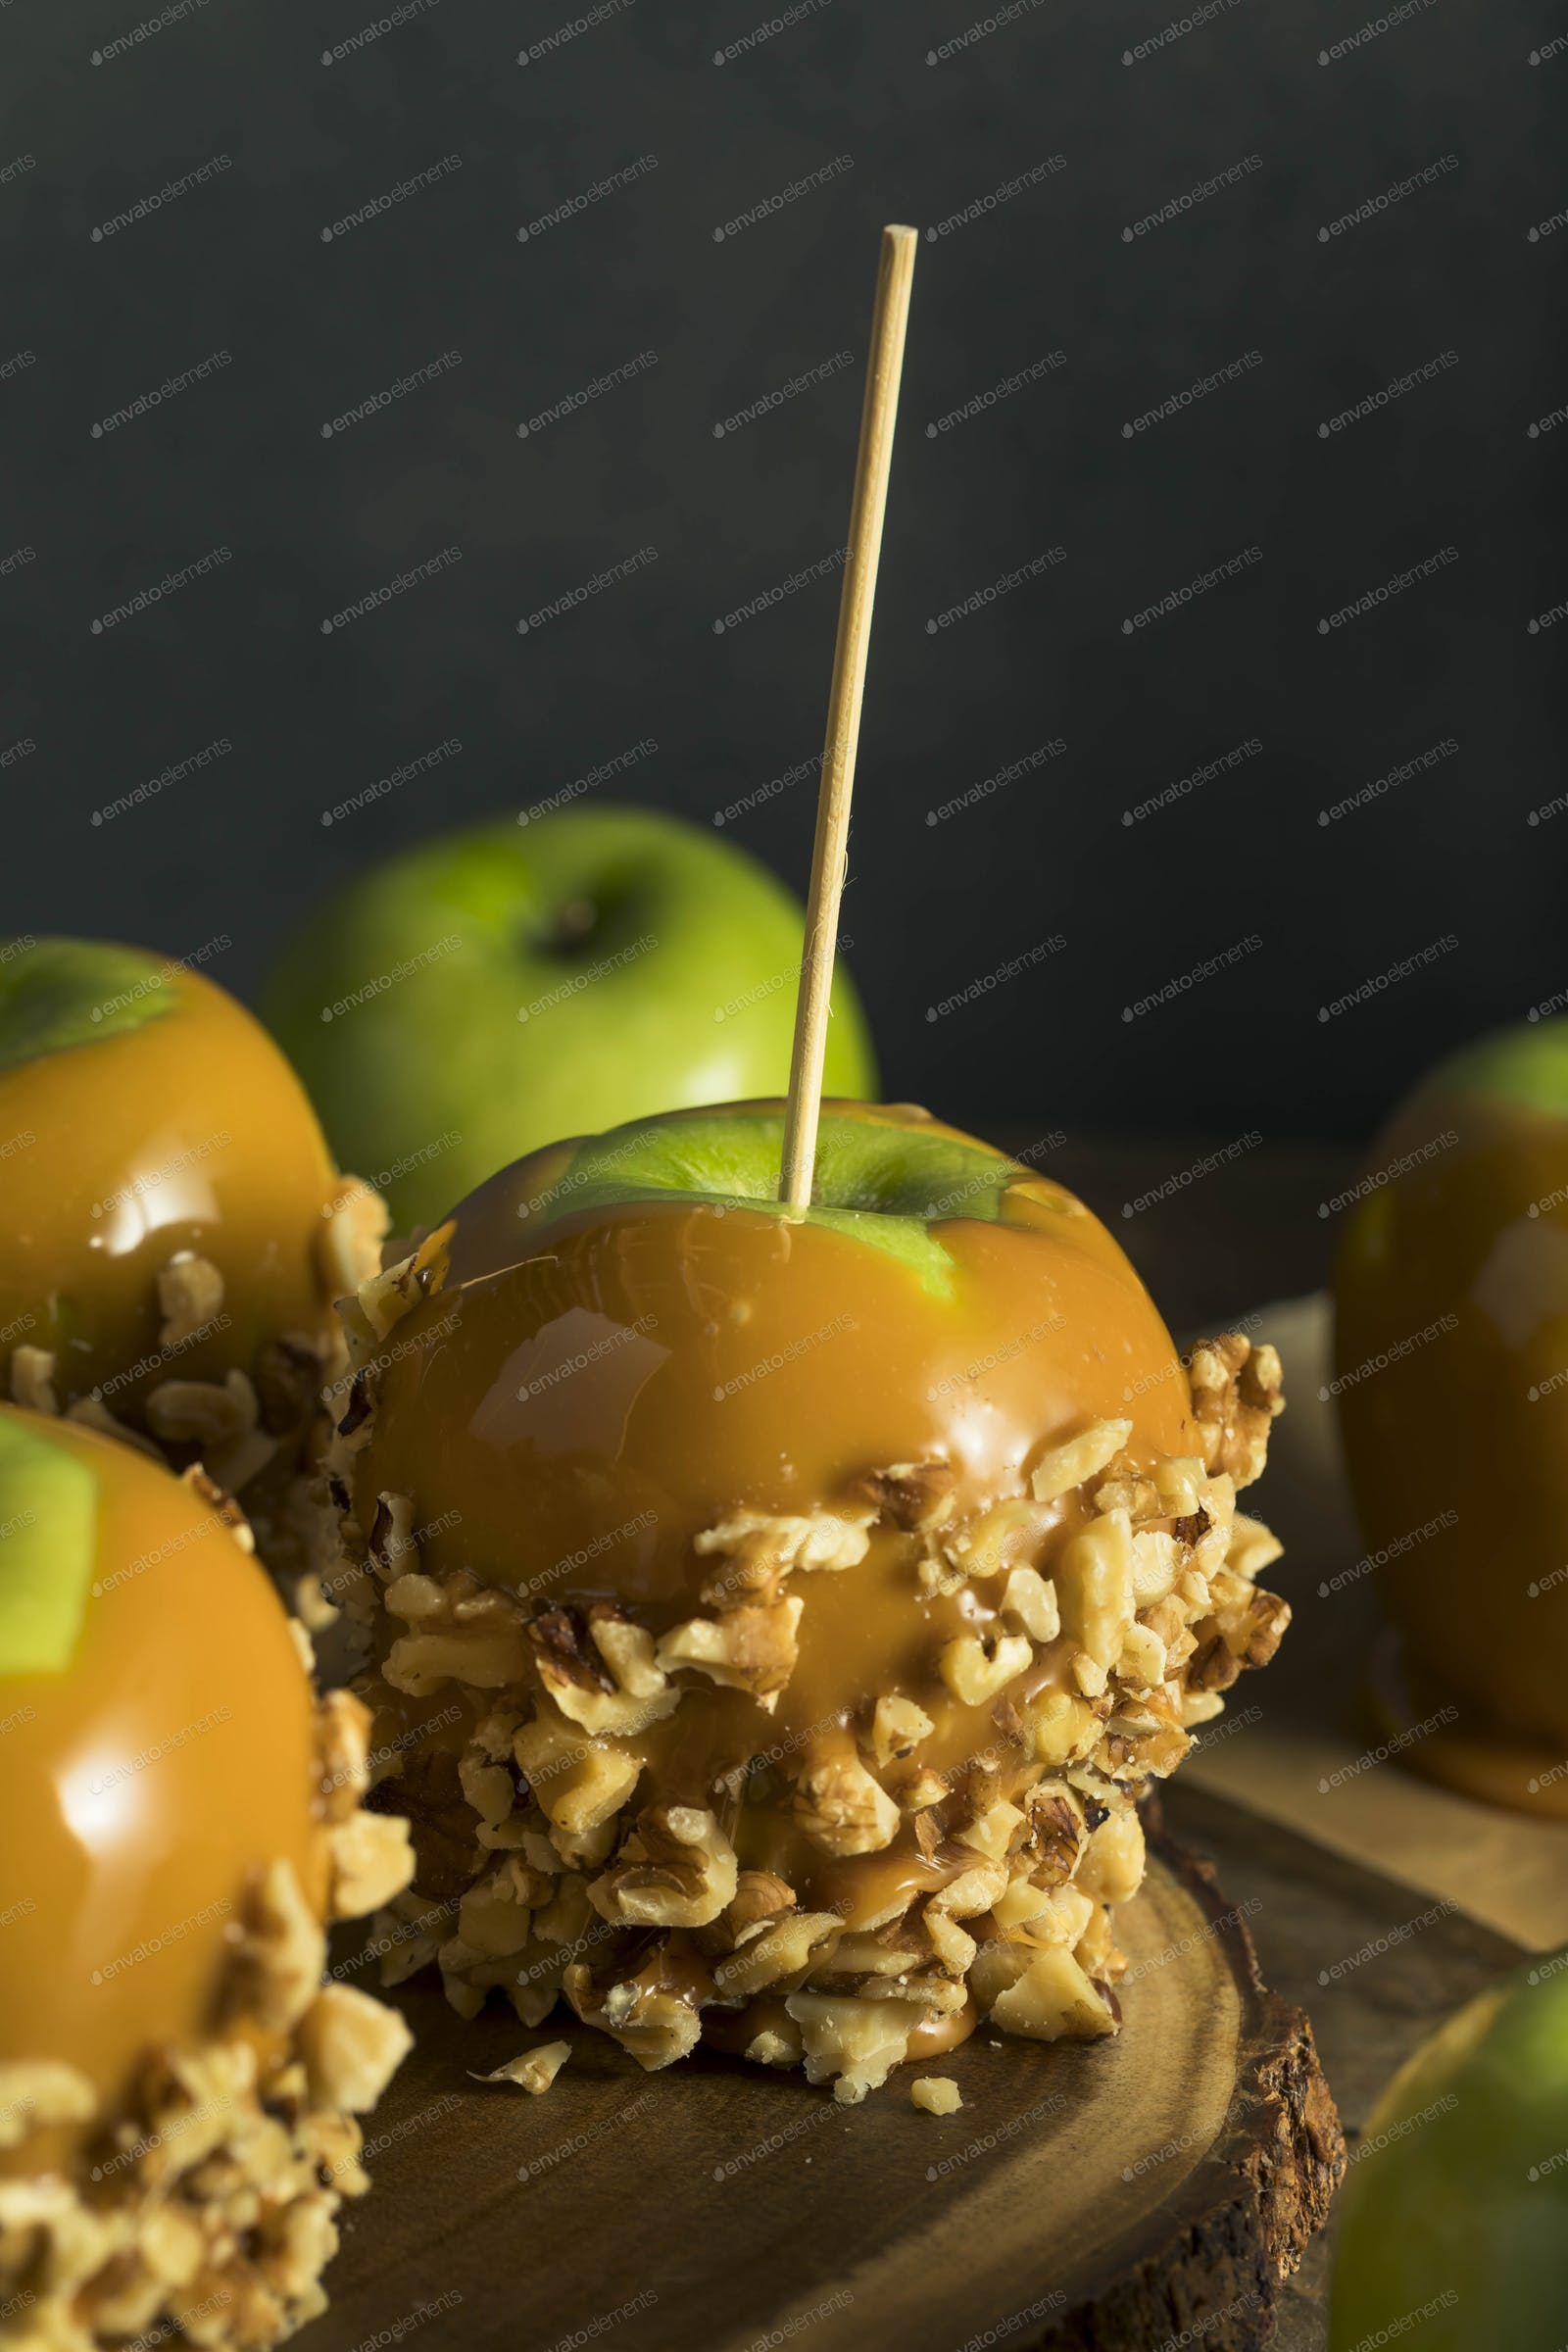 Homemade Organic Candy Taffy Apples photo by bhofack2 on